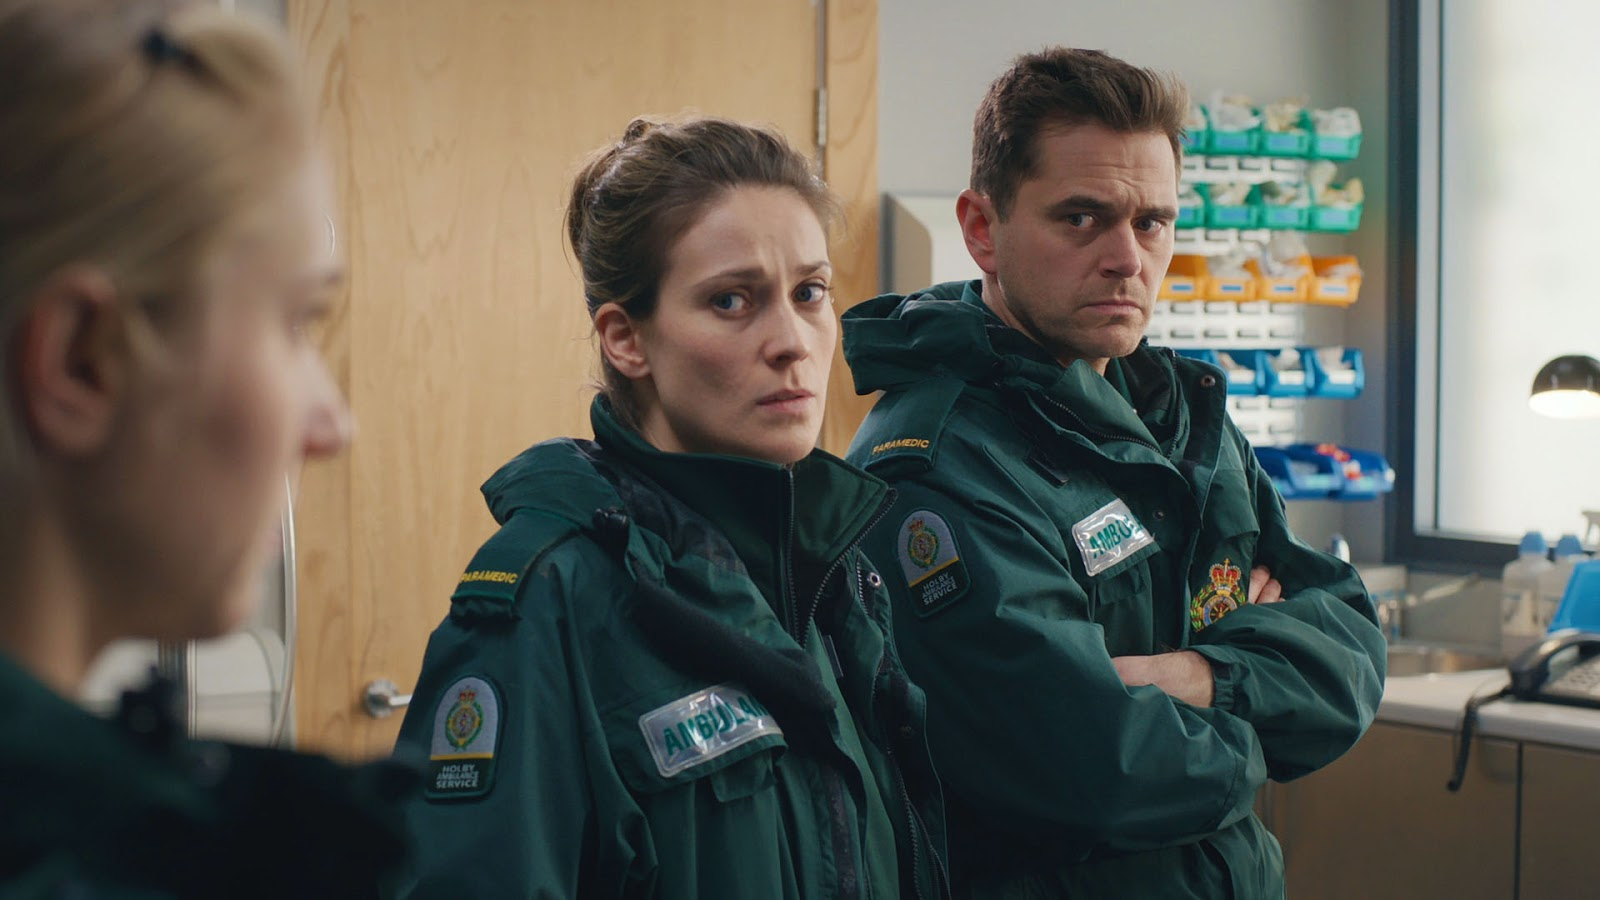 Casualty: Series 32, Episode 41